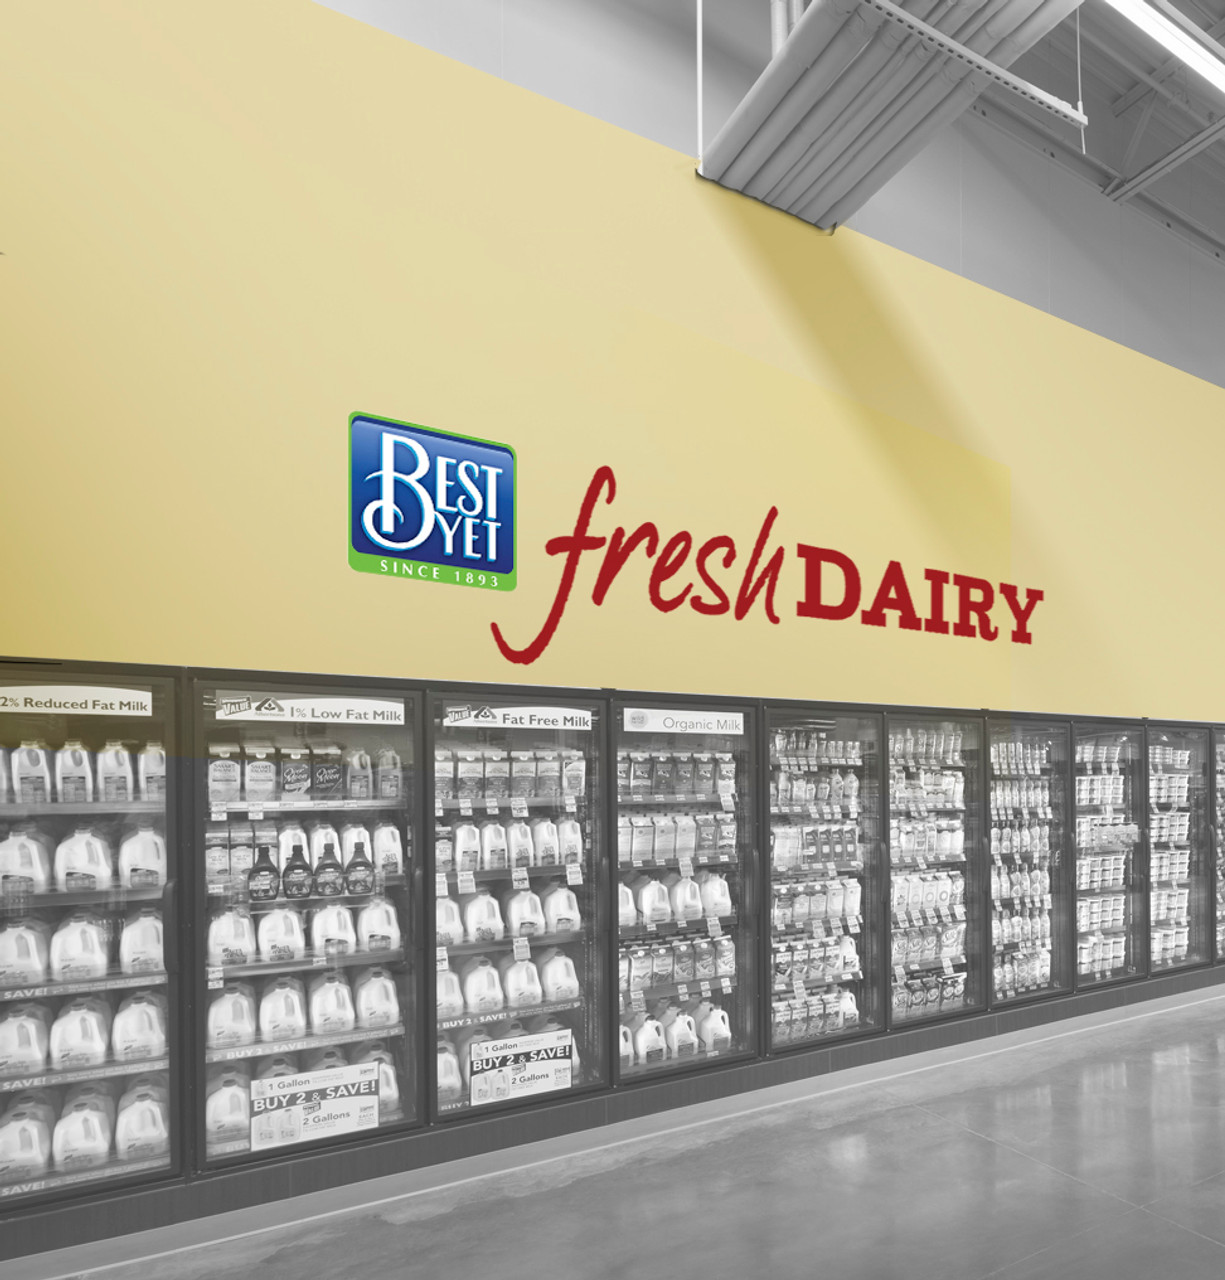 SELECT - Custom Vinyl Wall Lettering - Supermarket Decor Decals - 4 Sizes